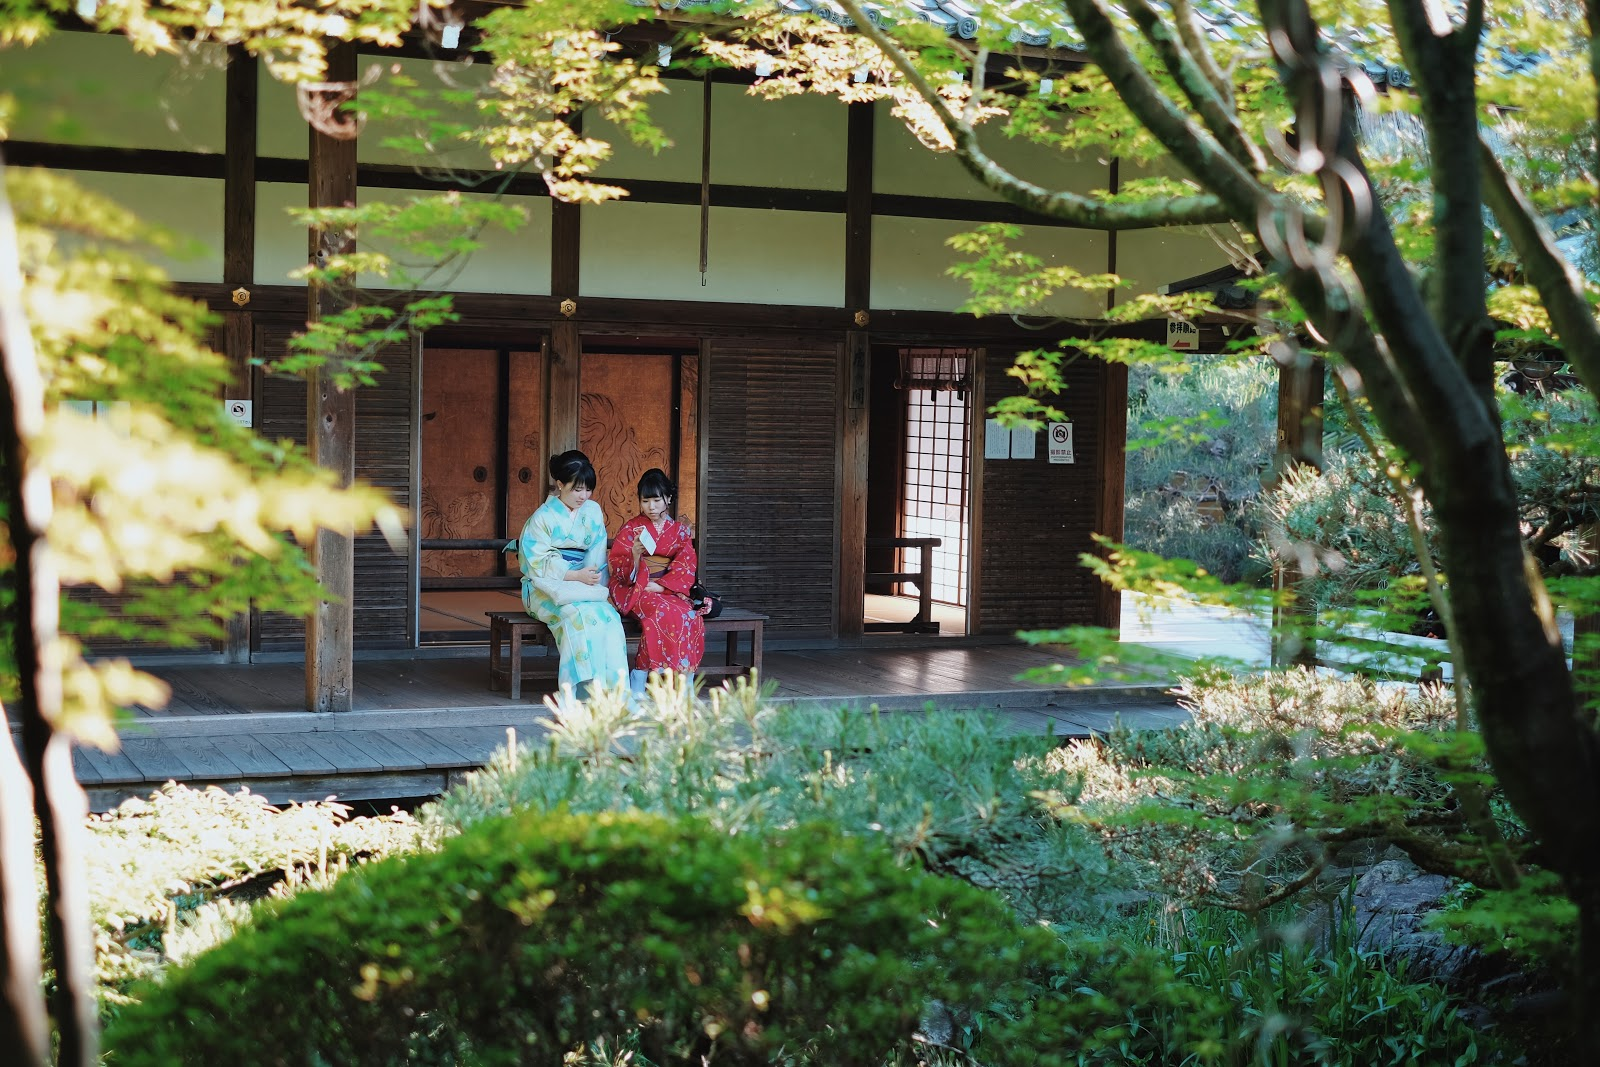 eikan-do shakado hall kyoto